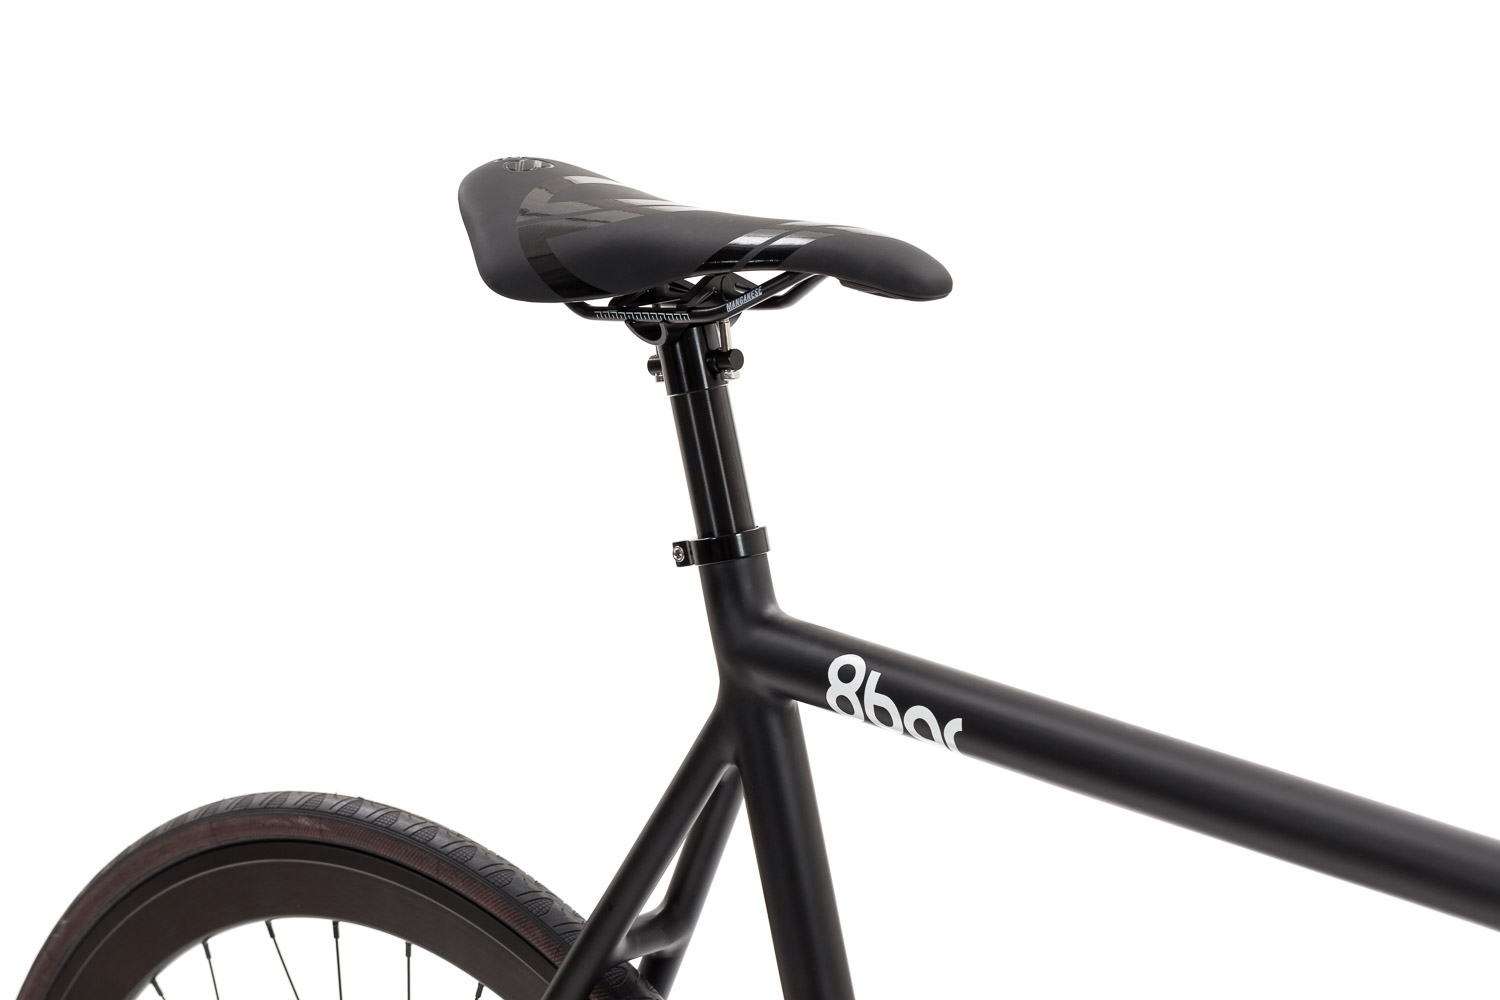 8bar-krzberg-pro-black-riser-fixie-fixed-gear-4